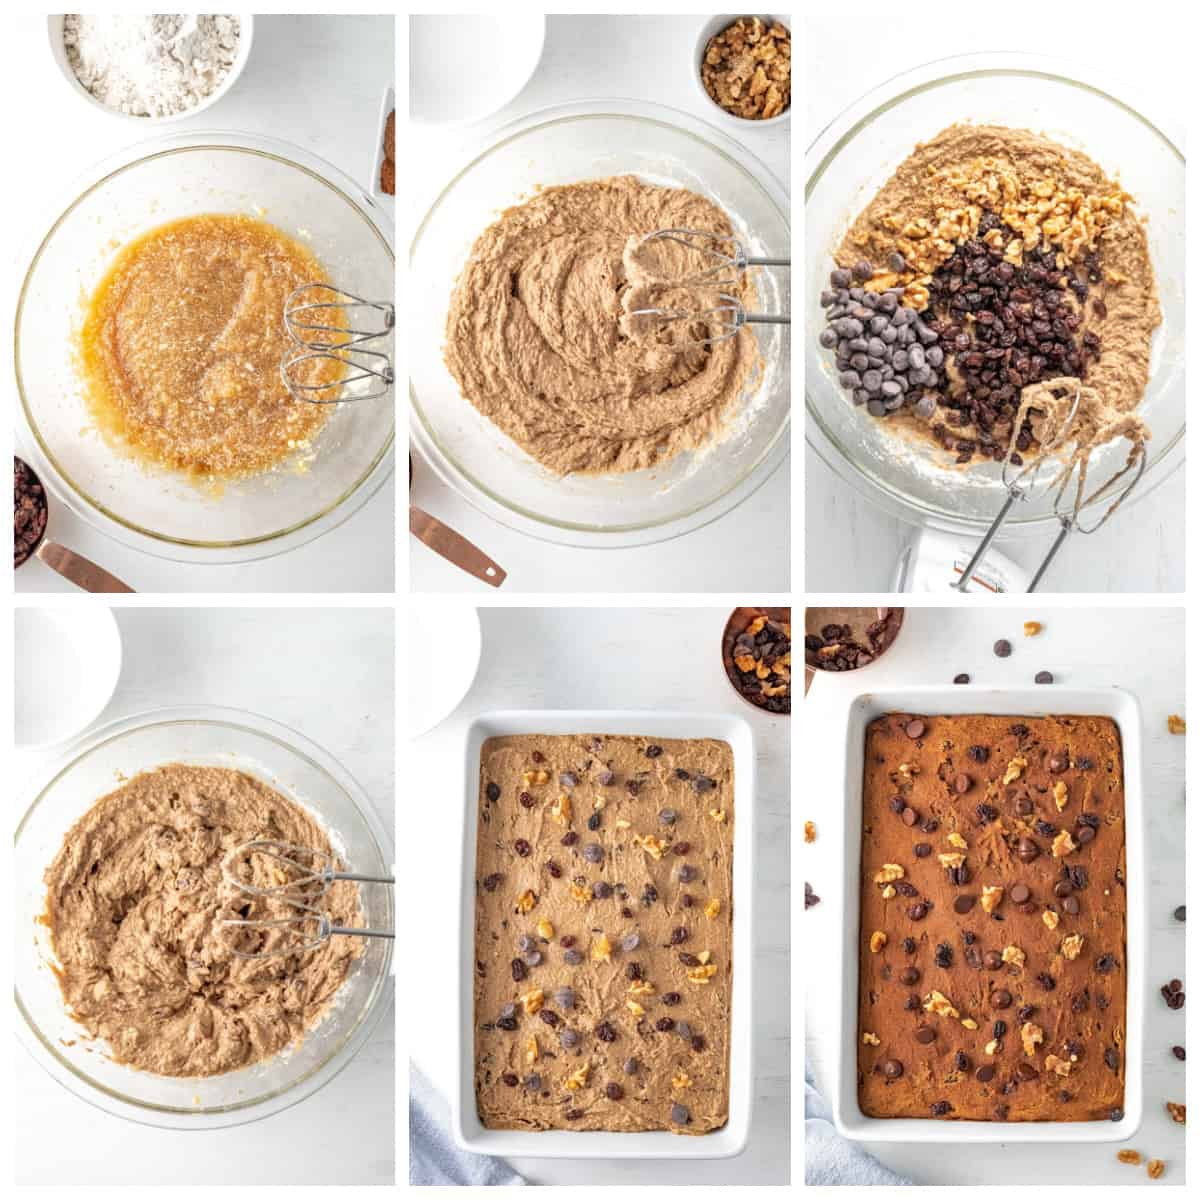 Step by step photos on how to make a Vintage Chocolate Chip Applesauce Cake.